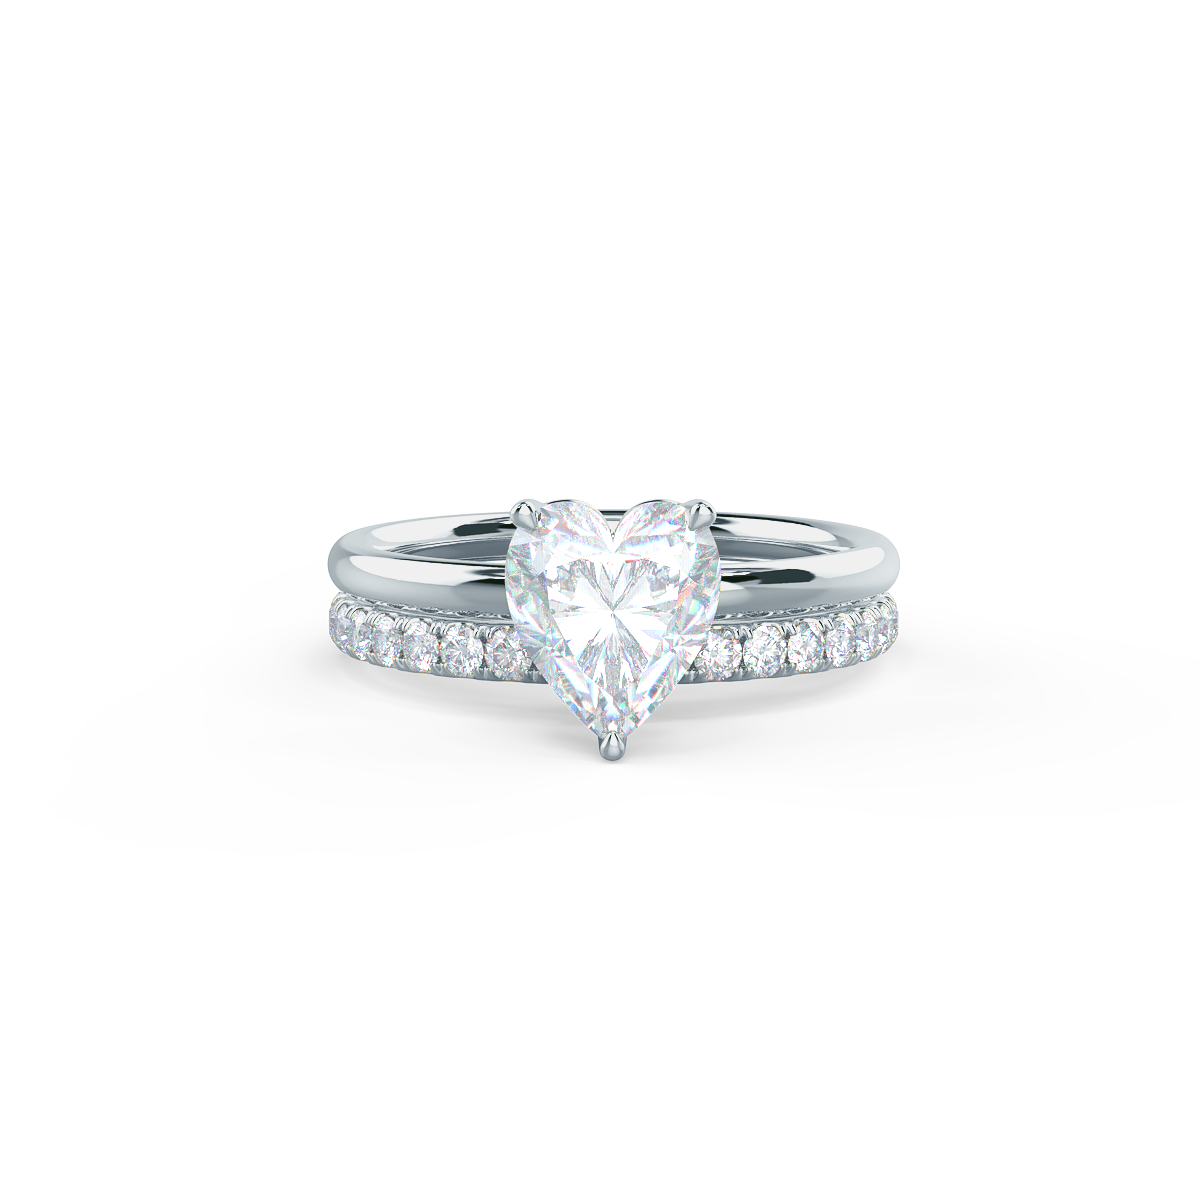 This setting allows for a wedding band to sit flush with no gap.     View Wedding Band Details